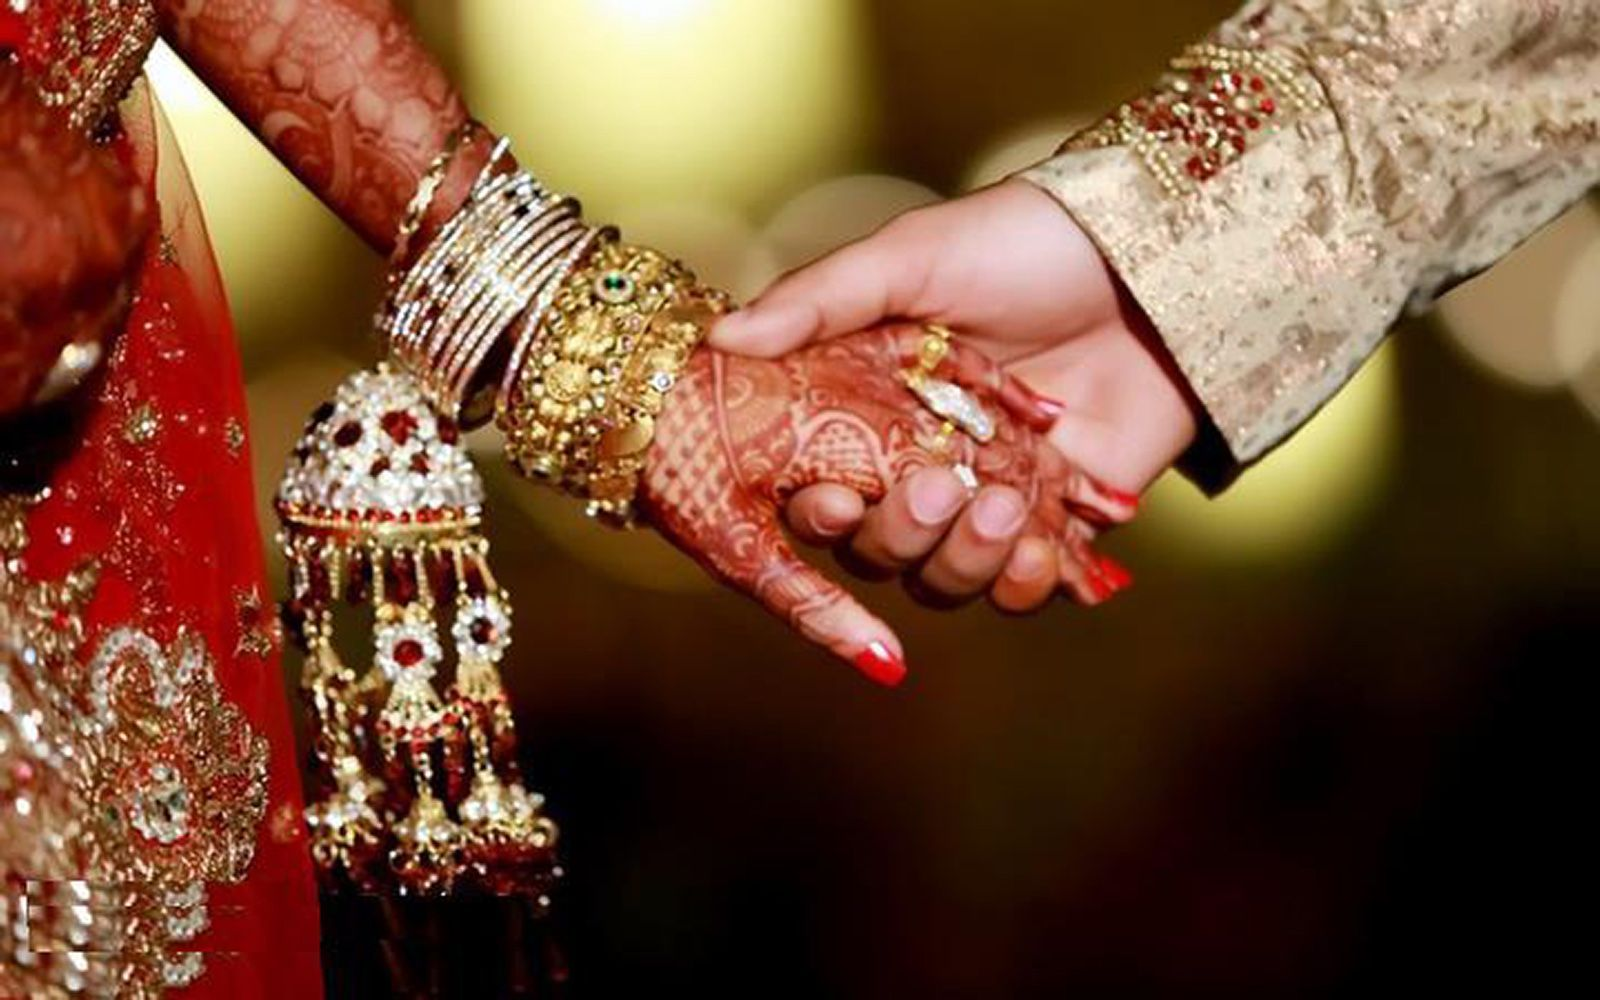 Image result for couple married images high quality